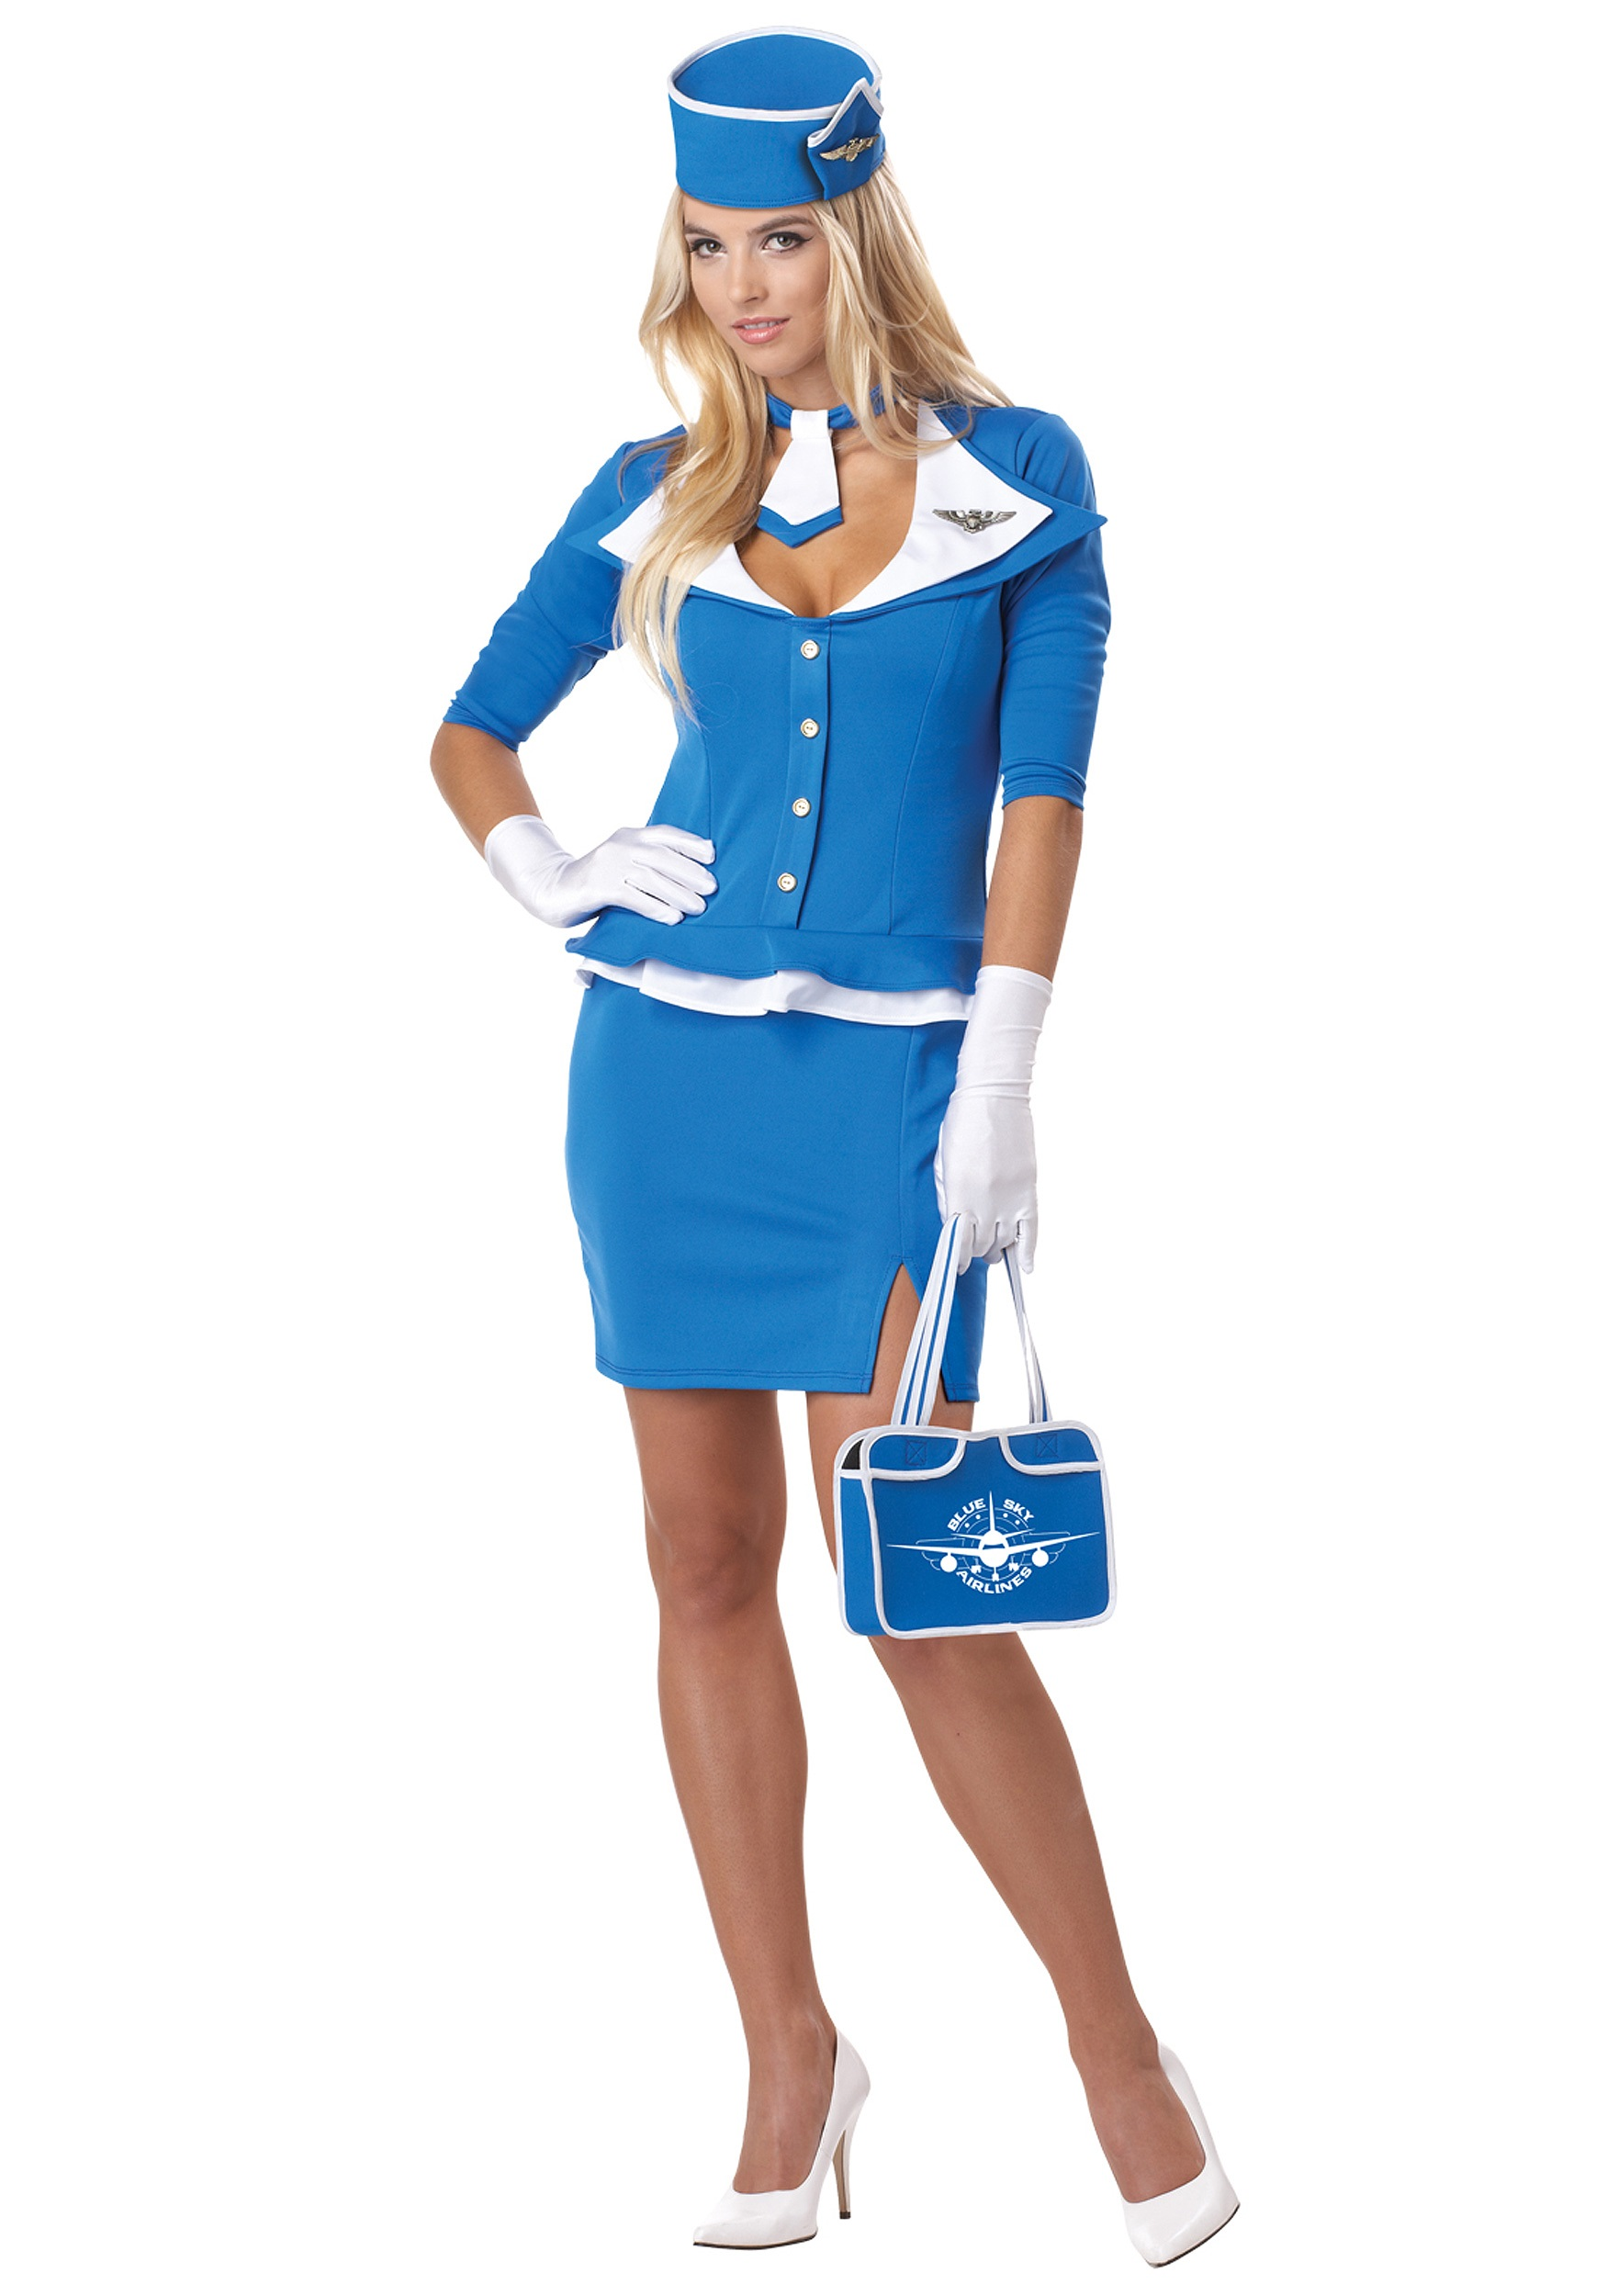 separation shoes 81c6d cfa5f Uniform Costumes - Cheerleader, Sailor, & Police Costumes